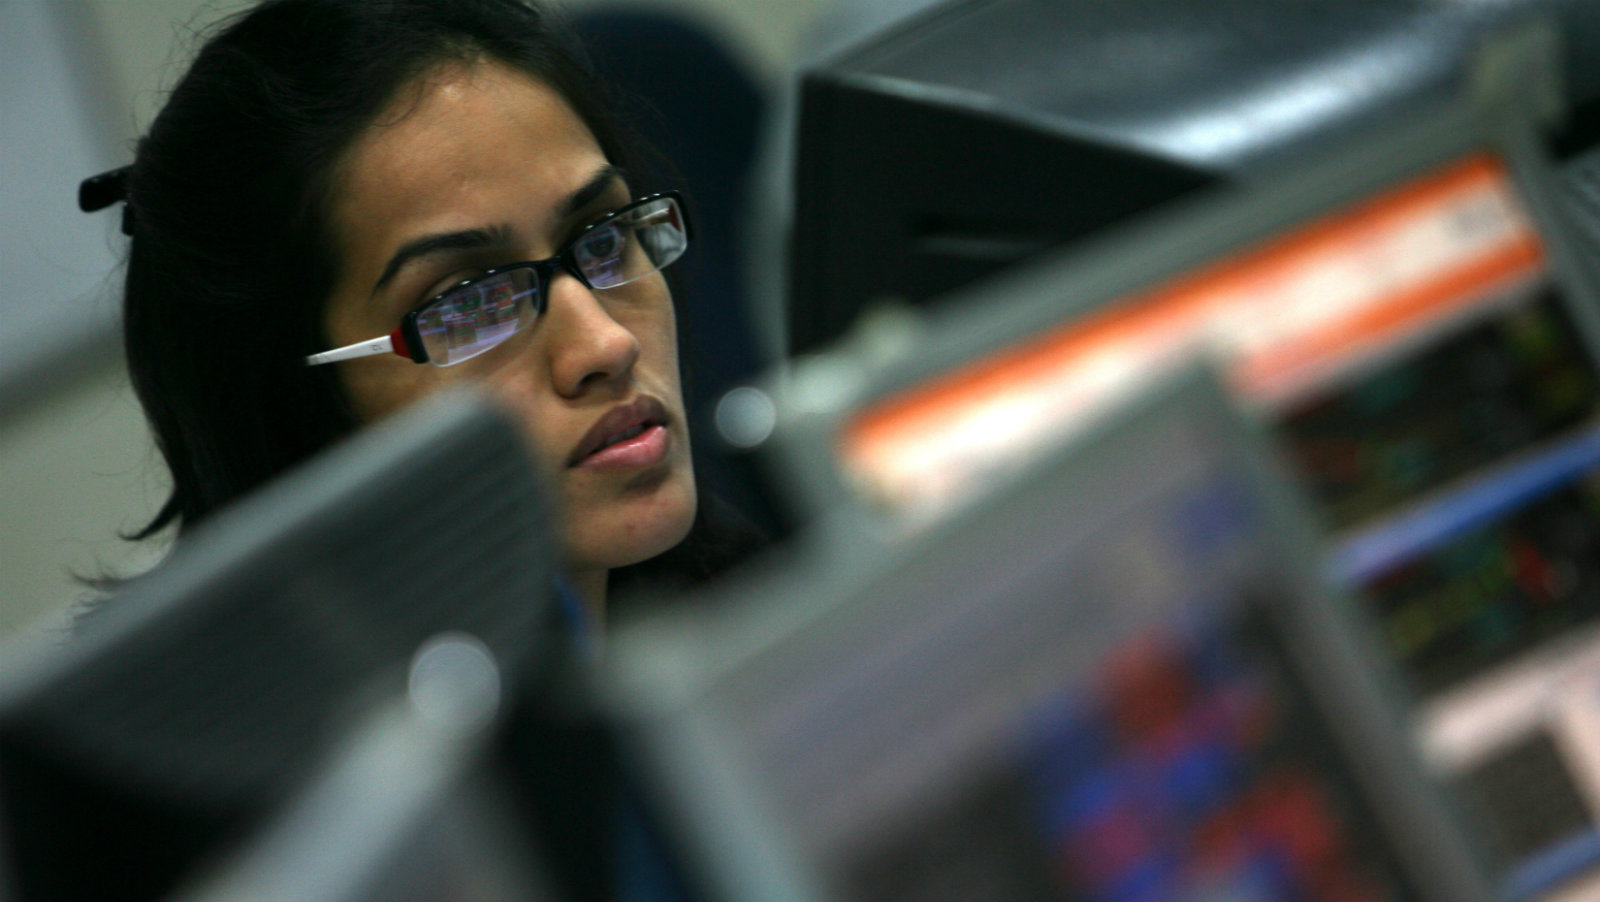 A broker looks at a computer screen at a stock brokerage firm in Mumbai July 6, 2009. Indian shares fell more than 5 percent on Monday and the rupee dropped to its lowest in a week as new growth spending announced by the government fueled investor fears about the growing fiscal deficit, sending bond yields sharply higher.